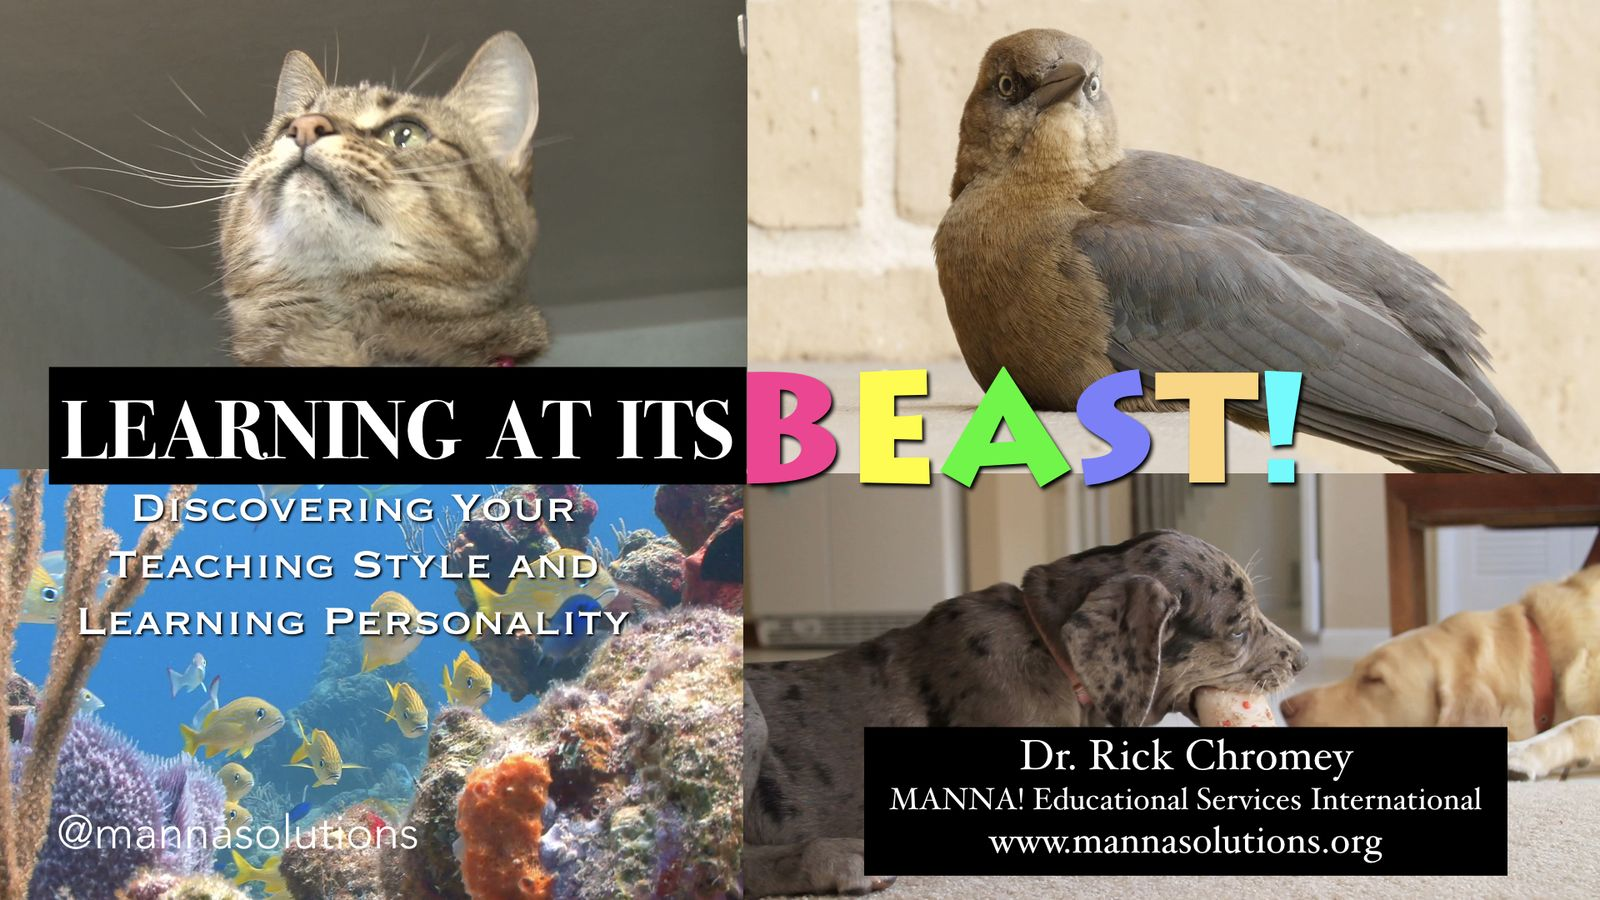 Manna! Solutions - Learning at its BEaST - Slide 001